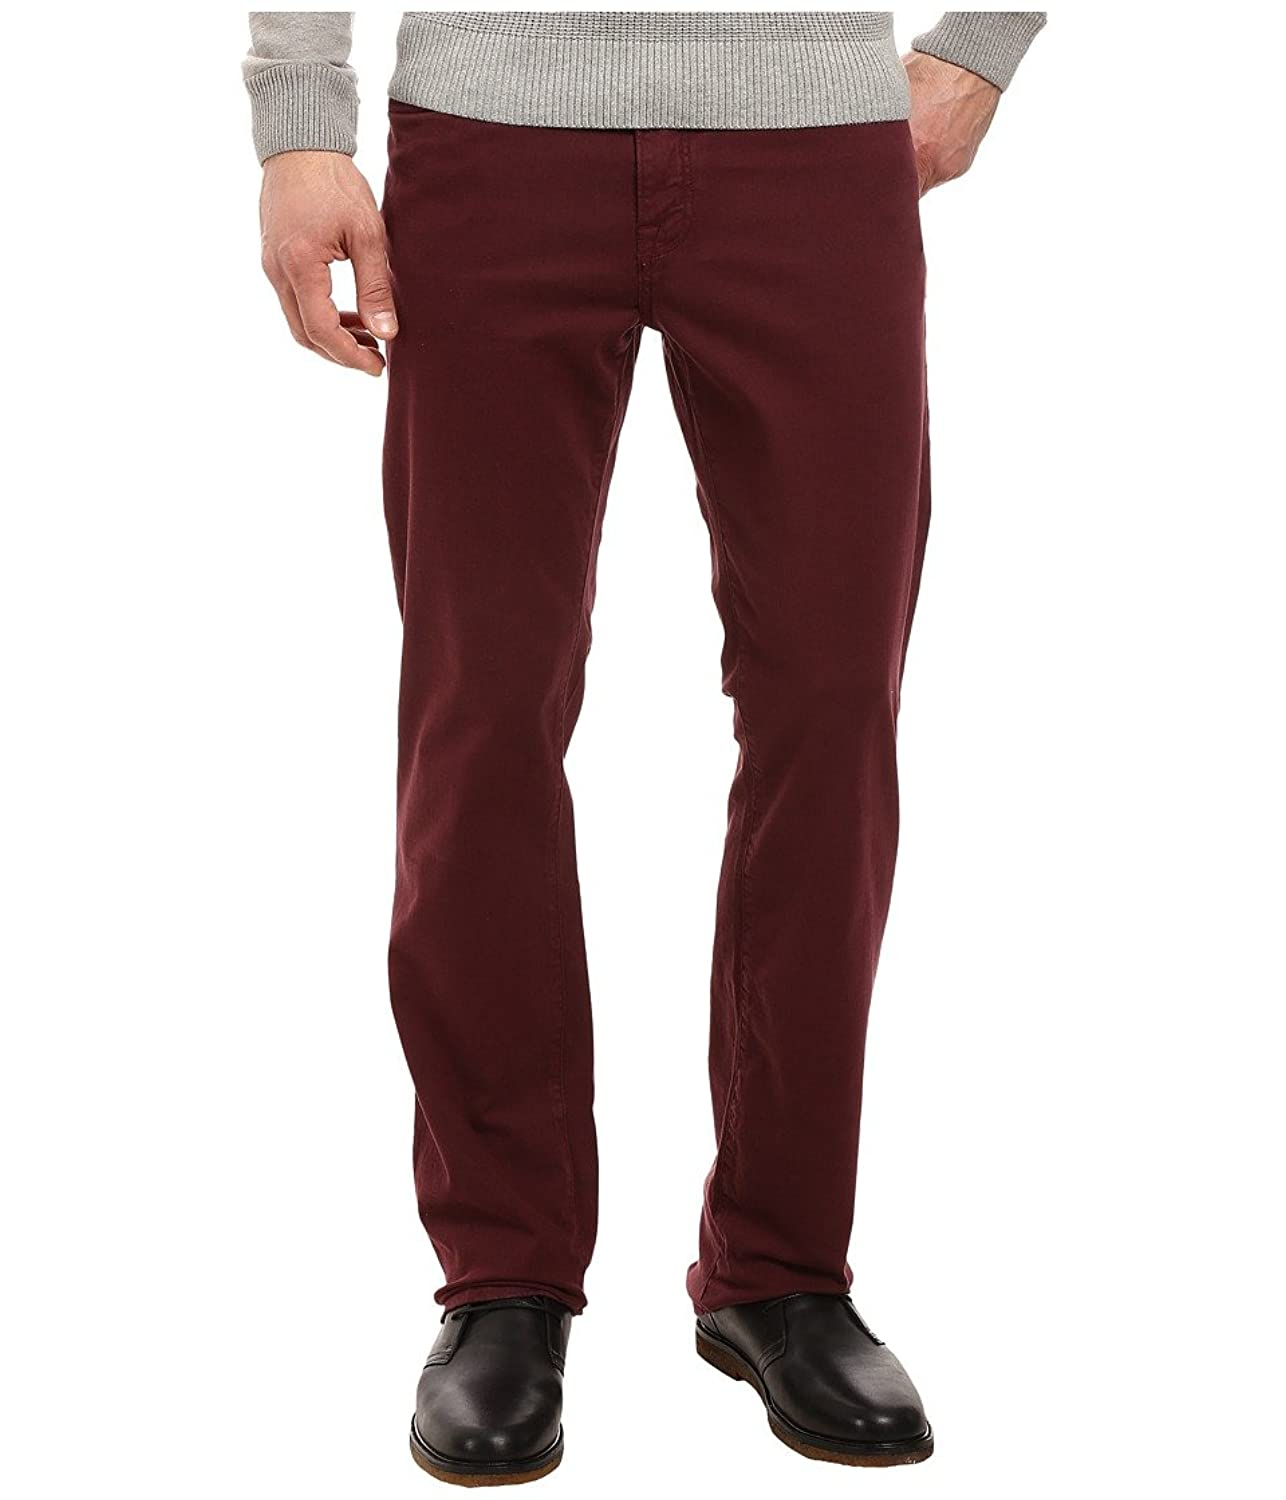 """34 Heritage Mens Charisma Classic Fit in Burgundy Twill 34"""" Inseam"""